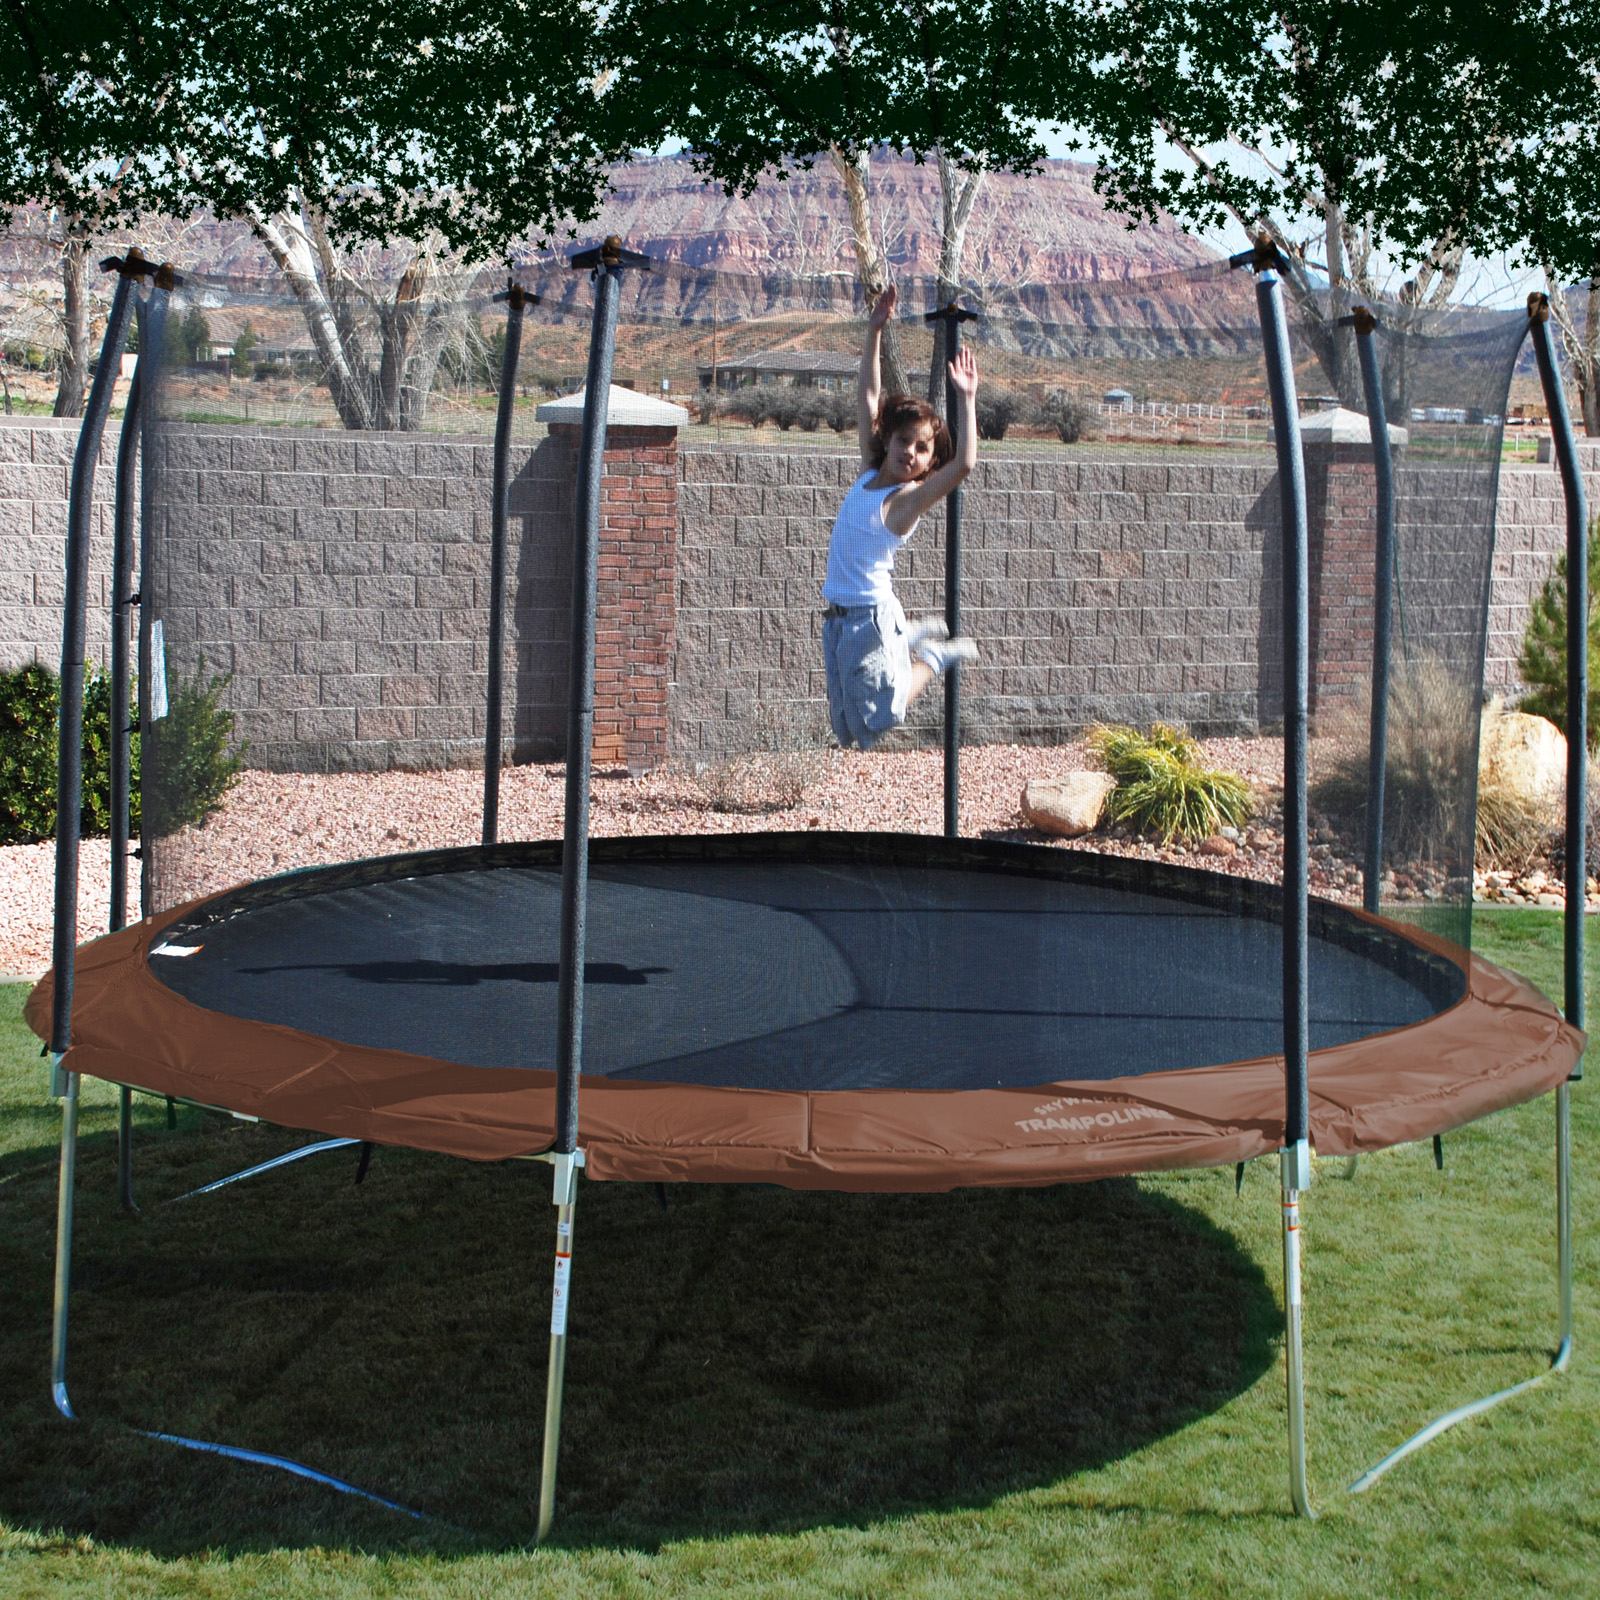 Skywalker 14 Foot Square Trampoline And Enclosure With: Skywalker 14 Ft. Round Trampoline And Enclosure Combo At